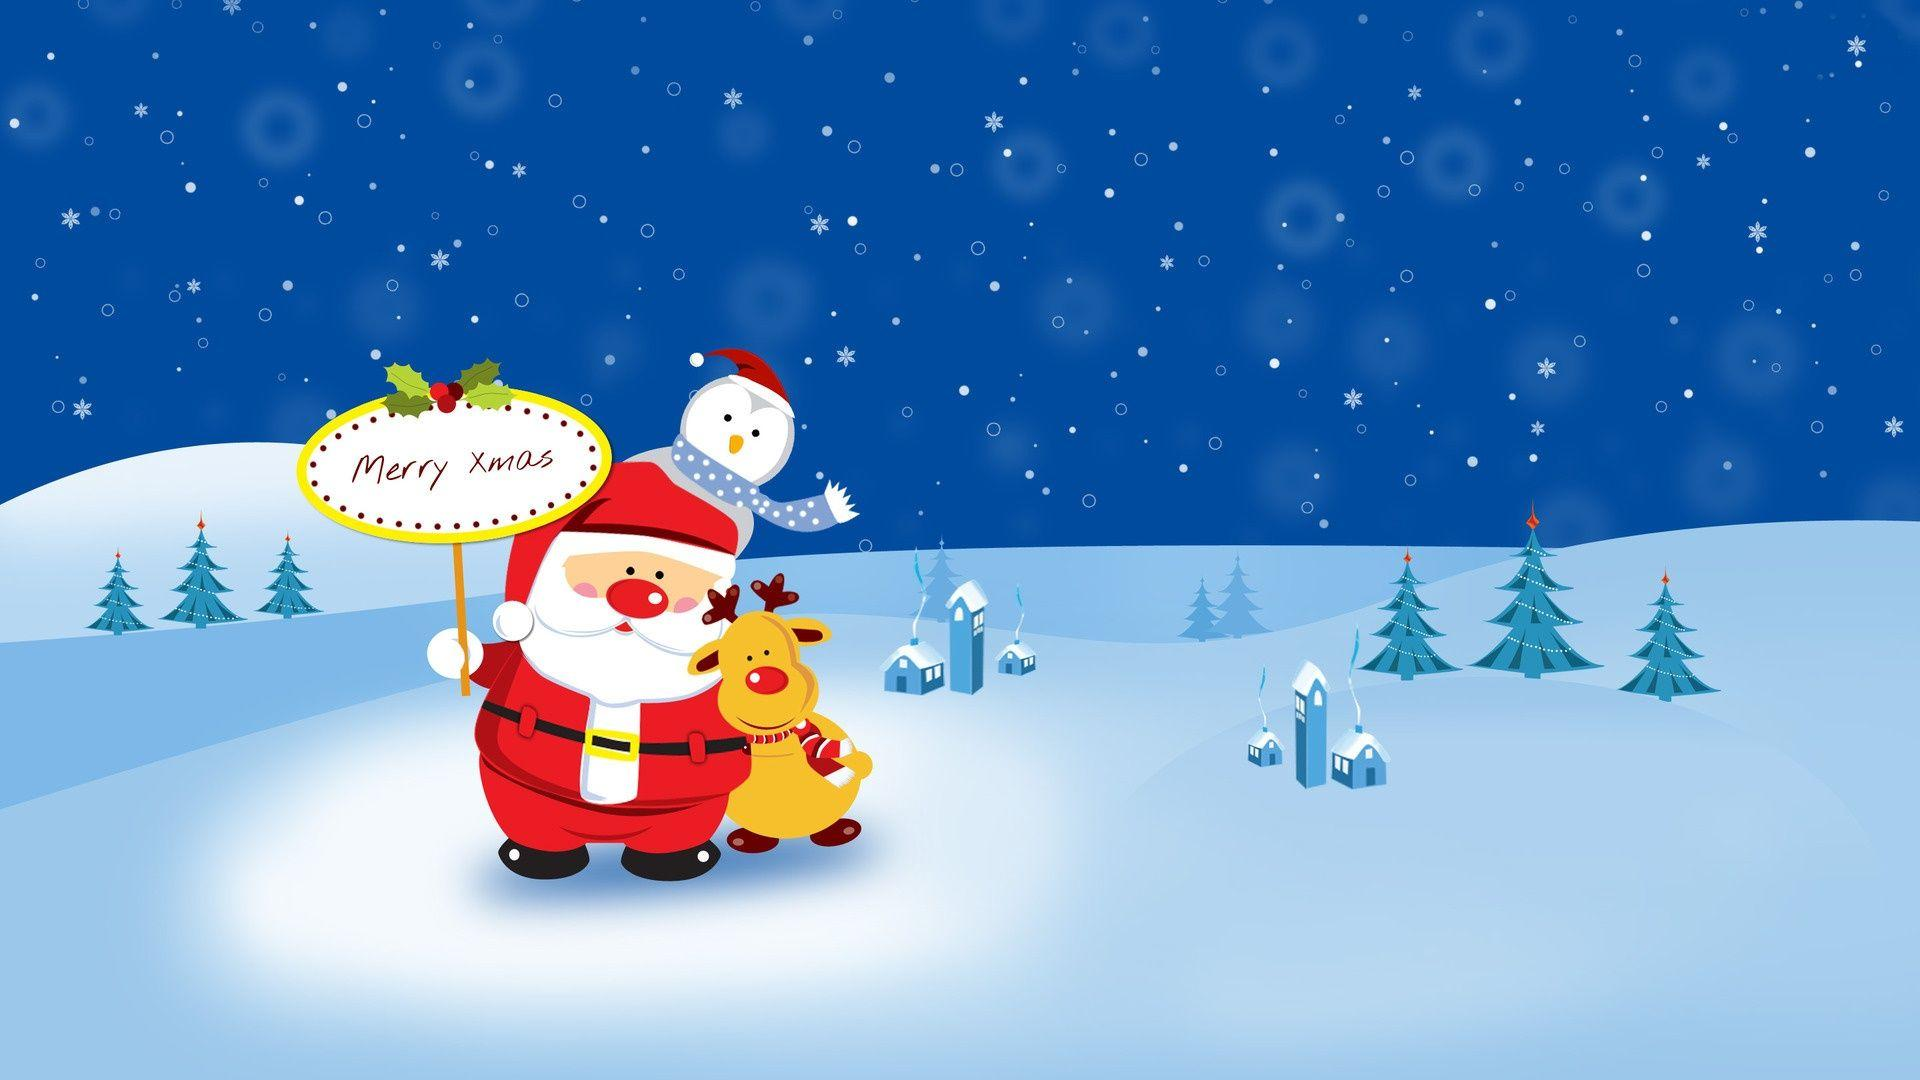 Cute Merry Christmas Wallpapers - Wallpaper Cave